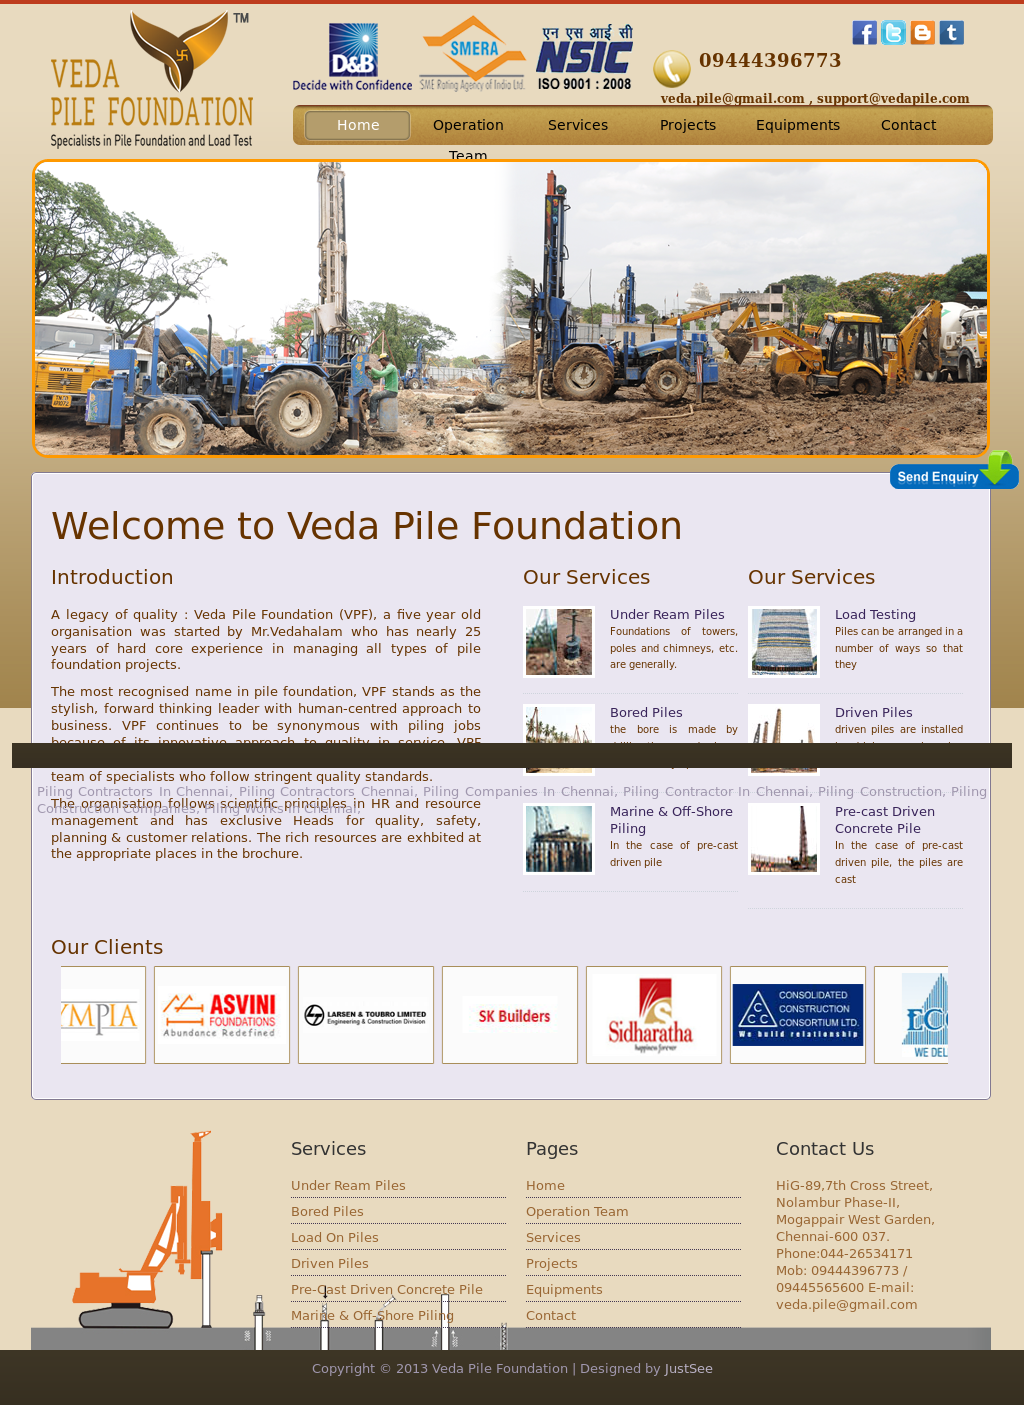 Veda Pile Foundation Competitors, Revenue and Employees - Owler